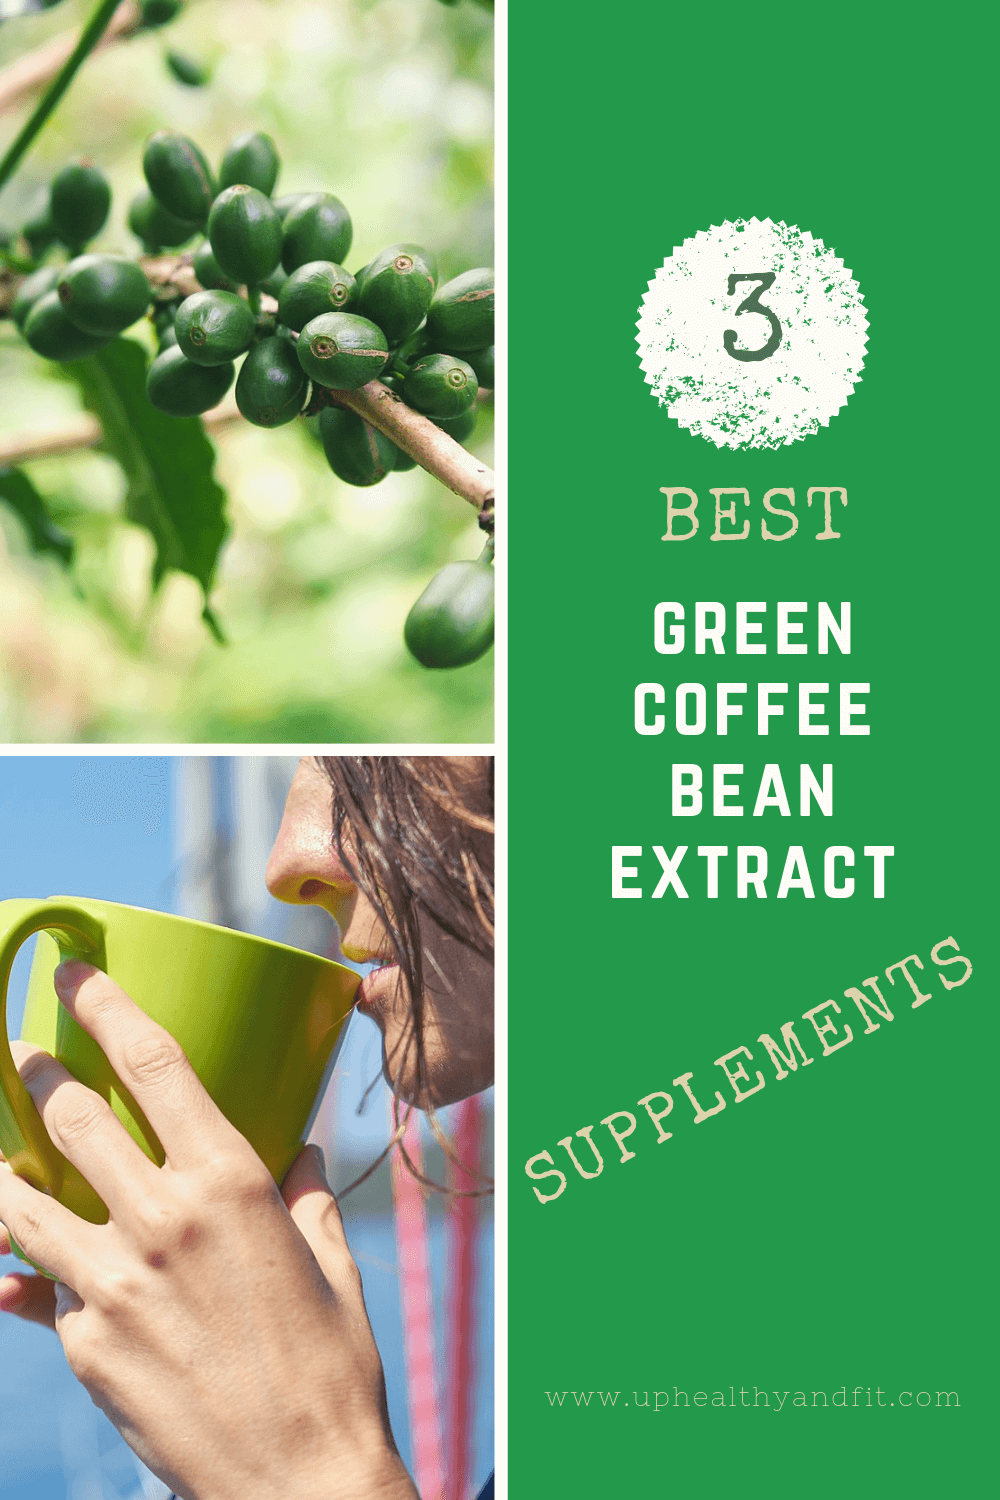 Best green coffee bean extract supplements detailed